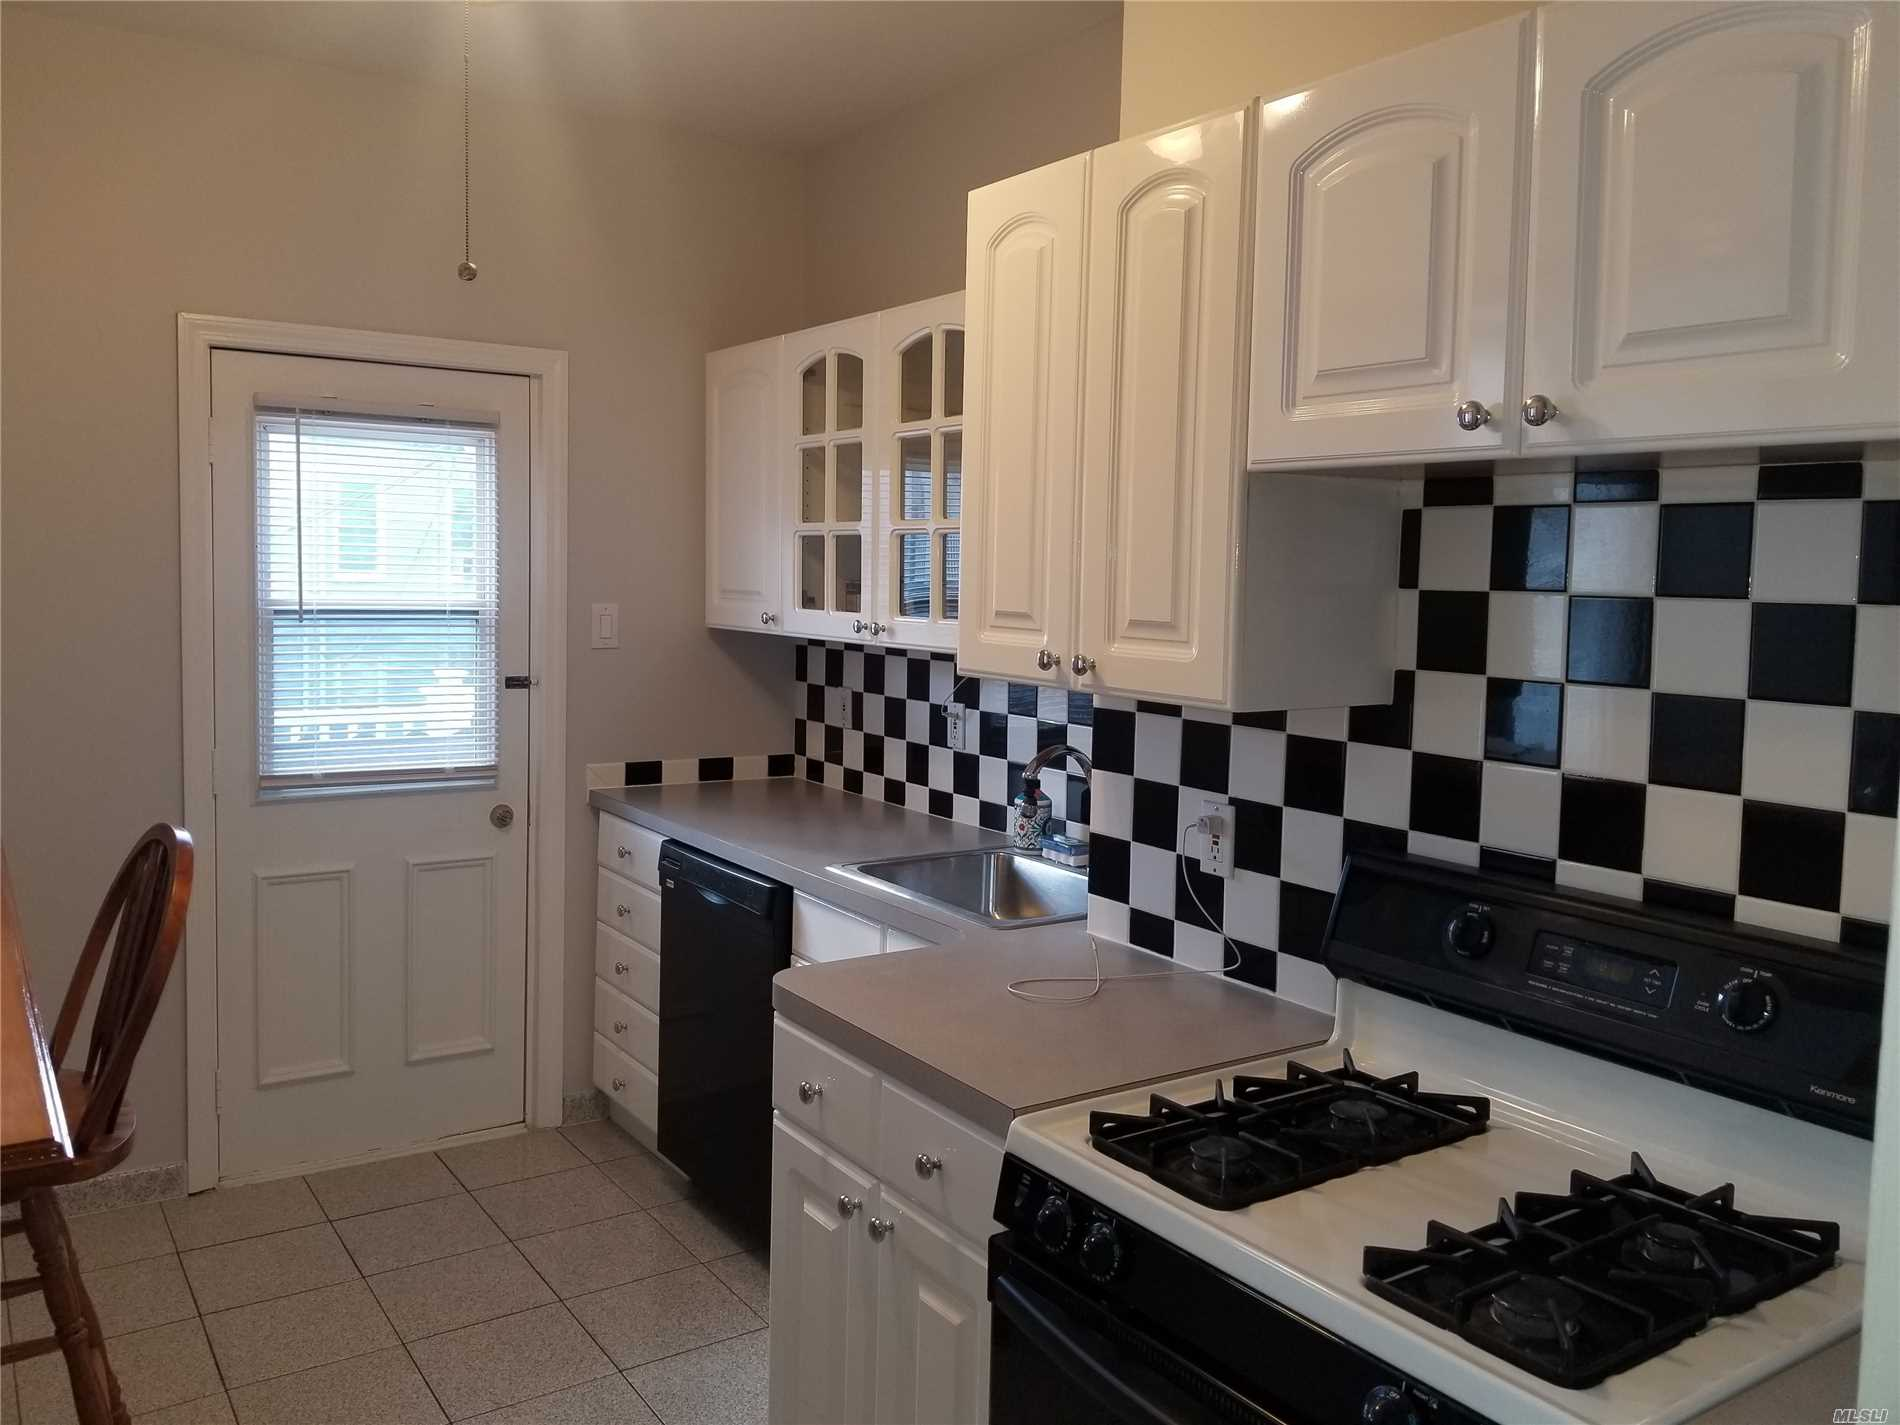 Renovated and freshly painted with all utilities included. 1st floor apartment with use of backyard deck. No Pets Permitted. 1 bedroom, Office, Kitchen leads to backyard deck Living room, 1 Full Bath.